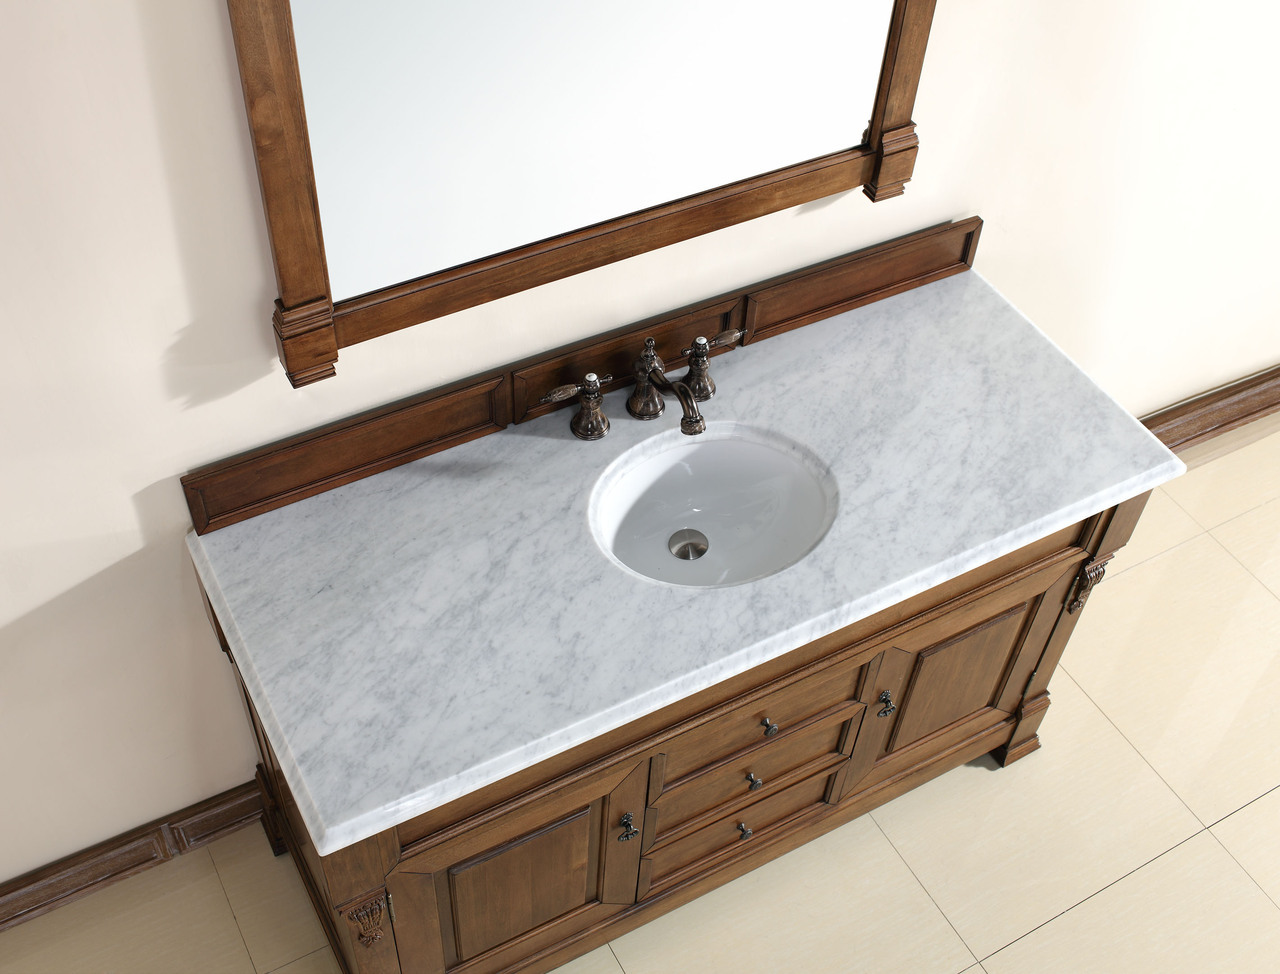 abstron 60 inch country oak finish single traditional bath vanity optional countertop